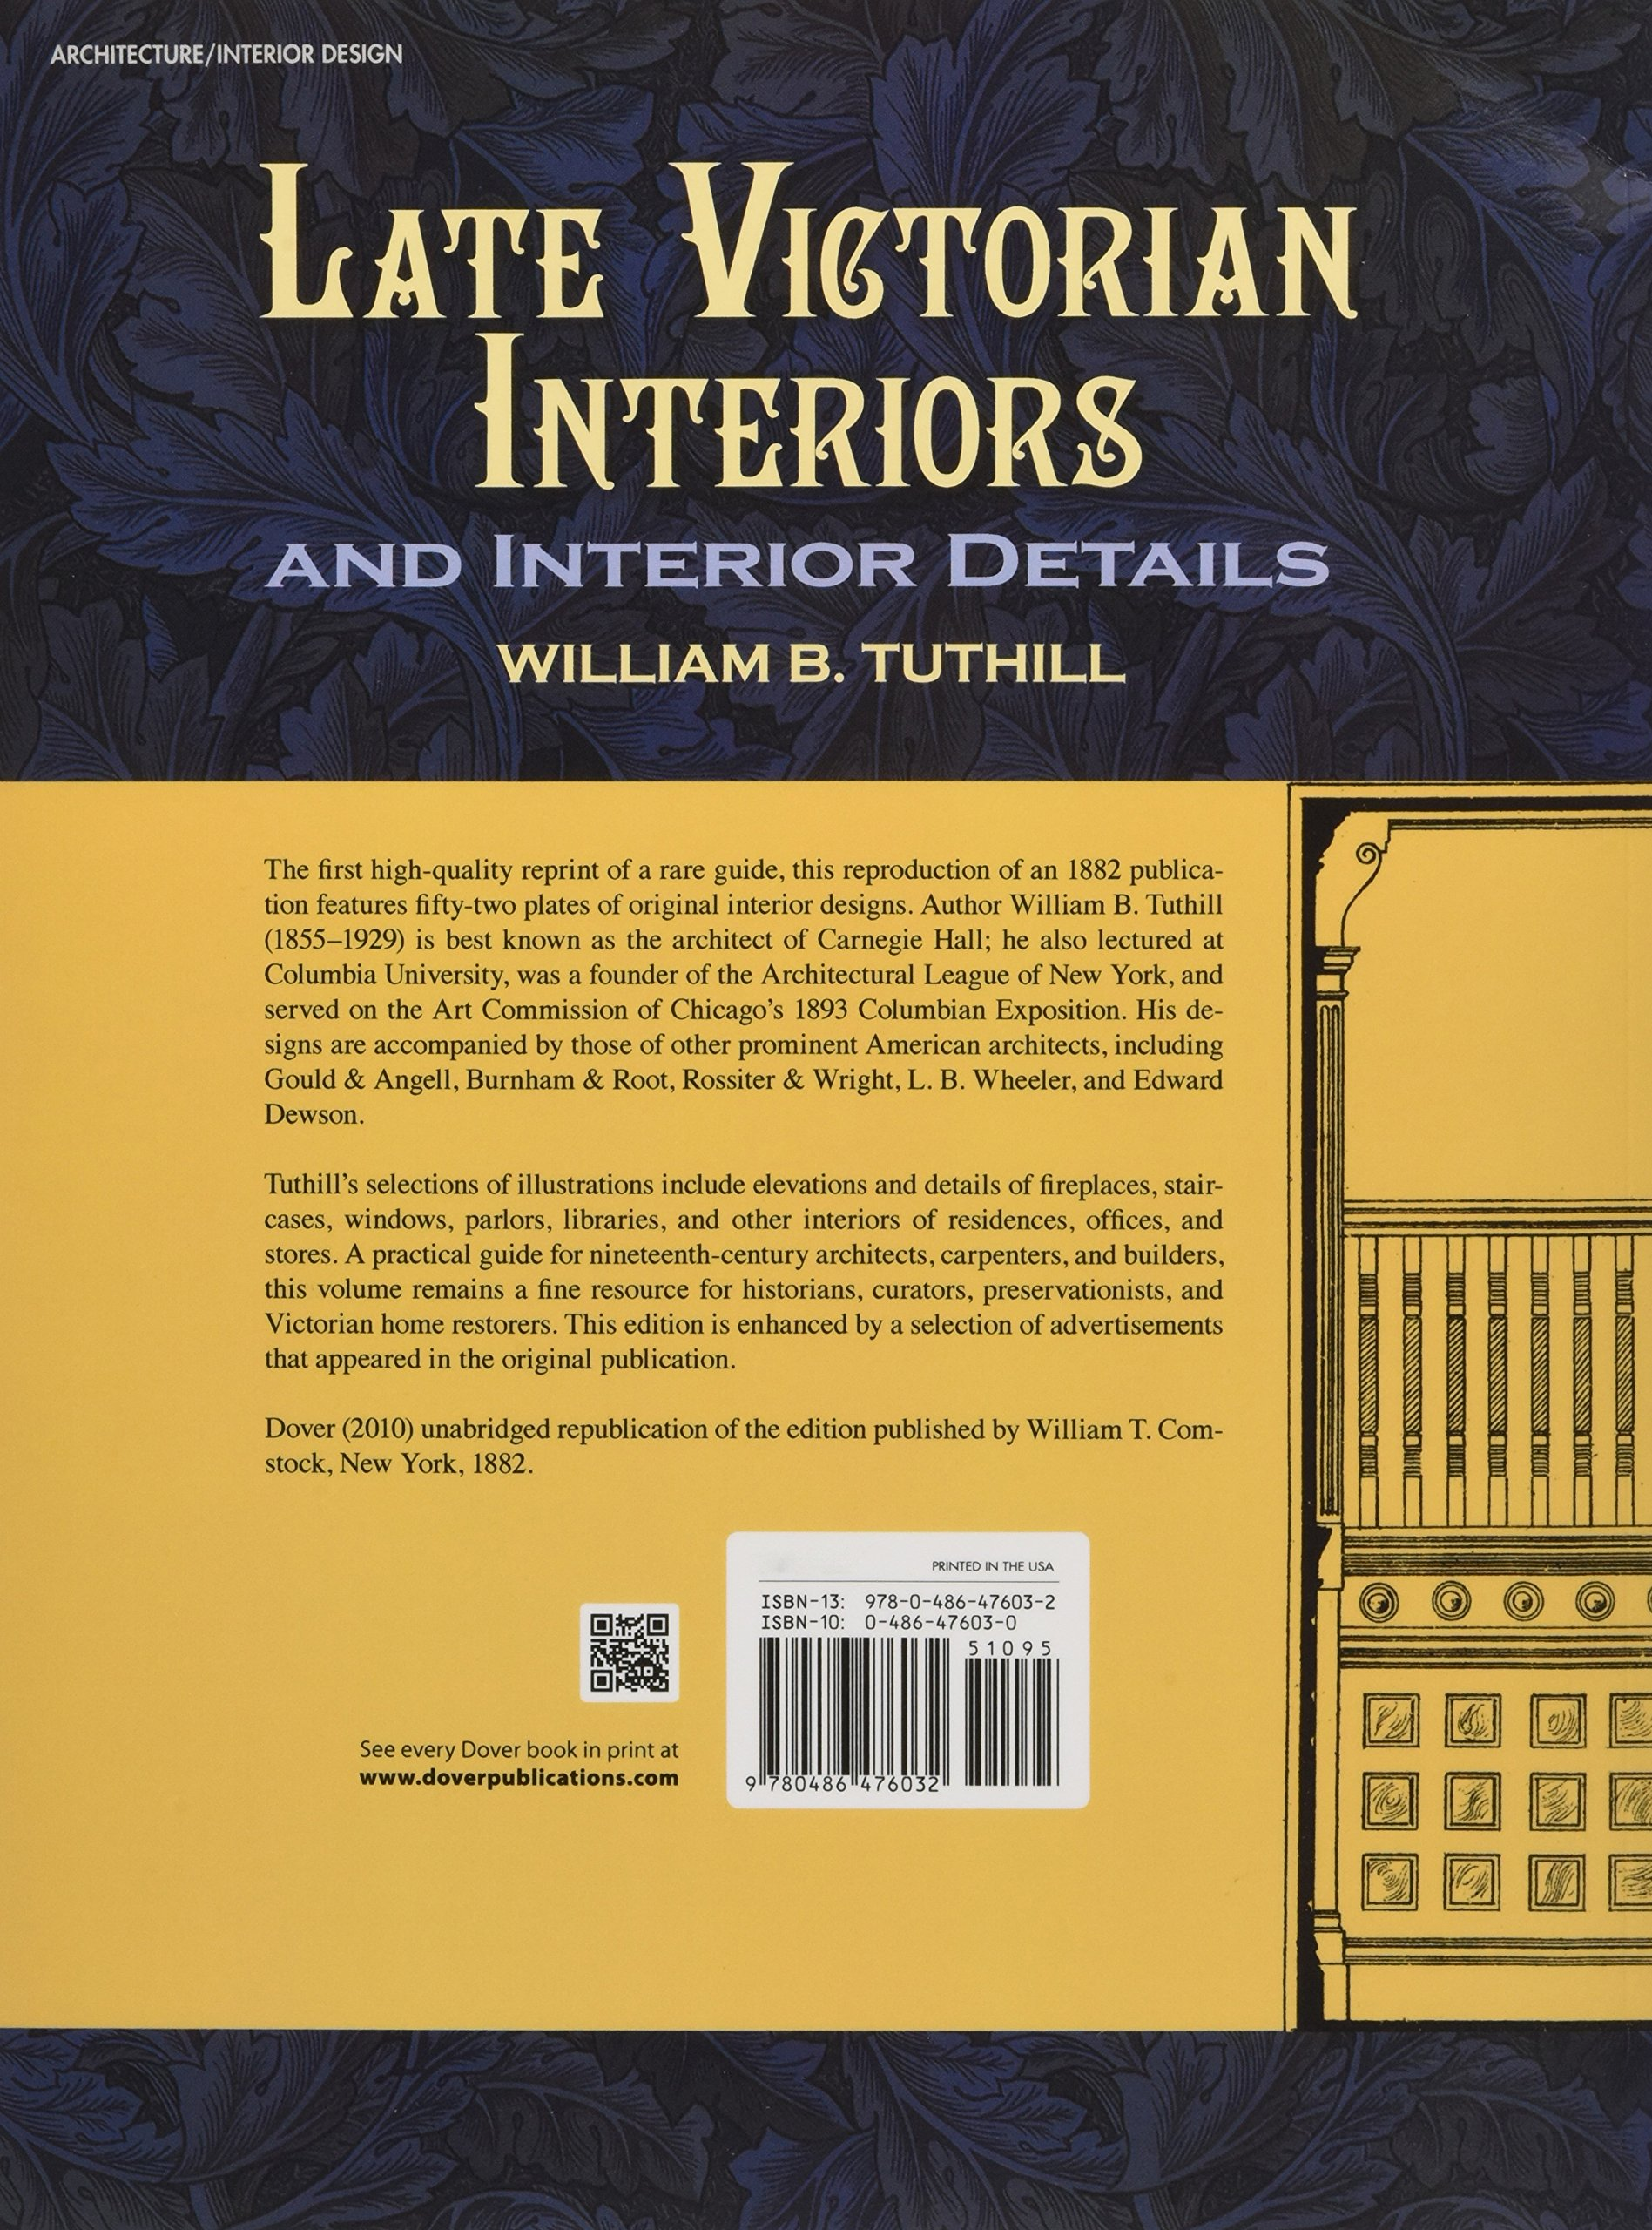 Late Victorian Interiors and Interior Details (Dover Architecture) by Dover Publications (Image #2)